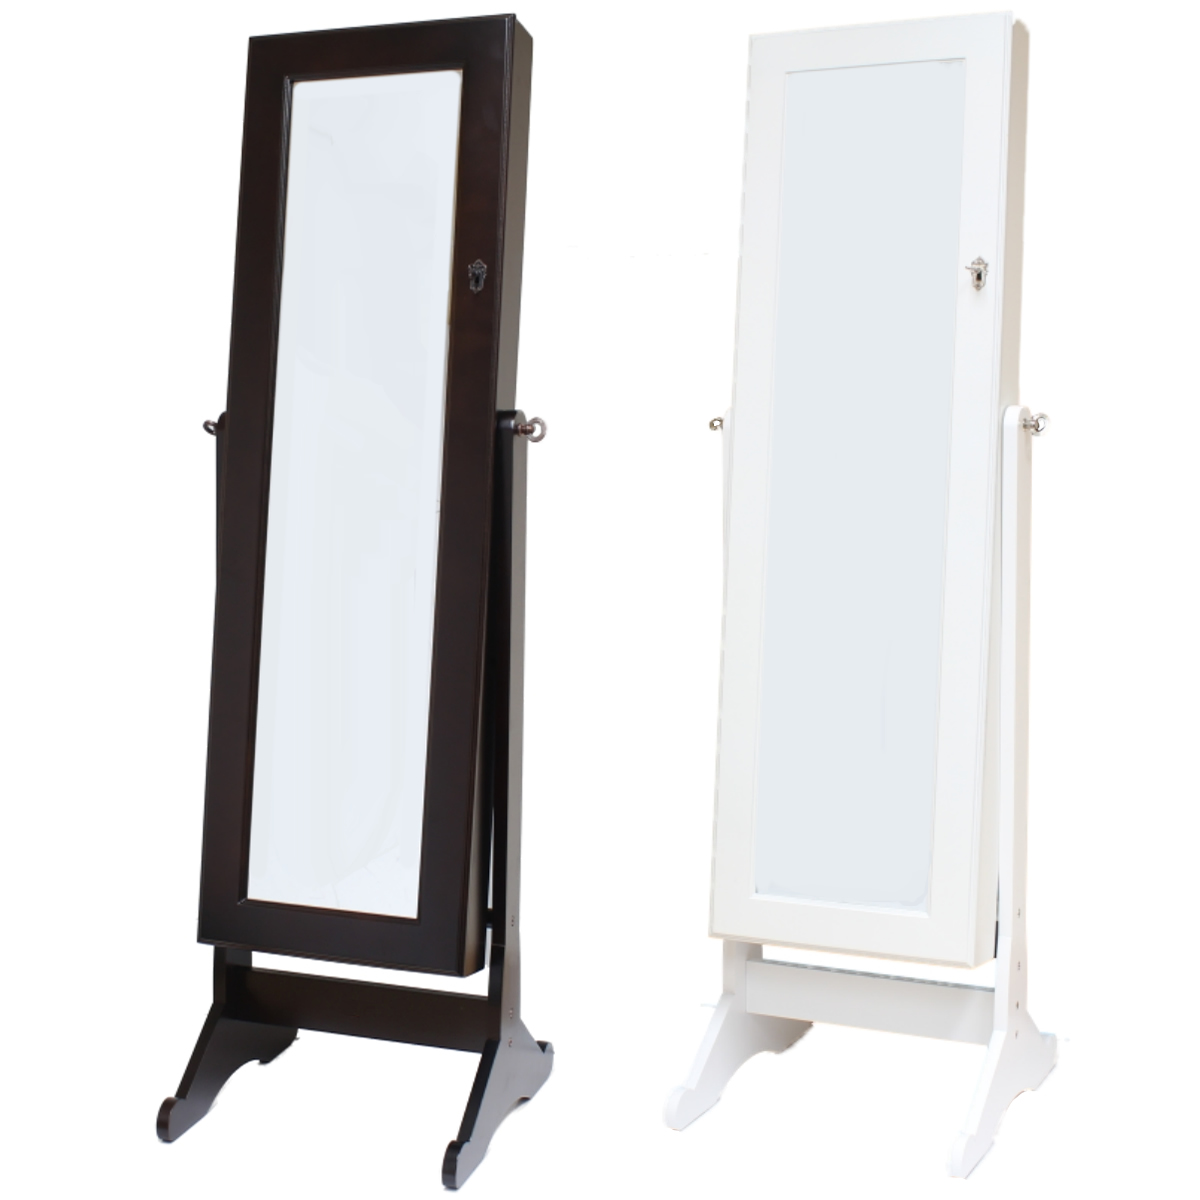 Large floor standing bedroom mirror jewellery box cabinet for Giant bedroom mirror